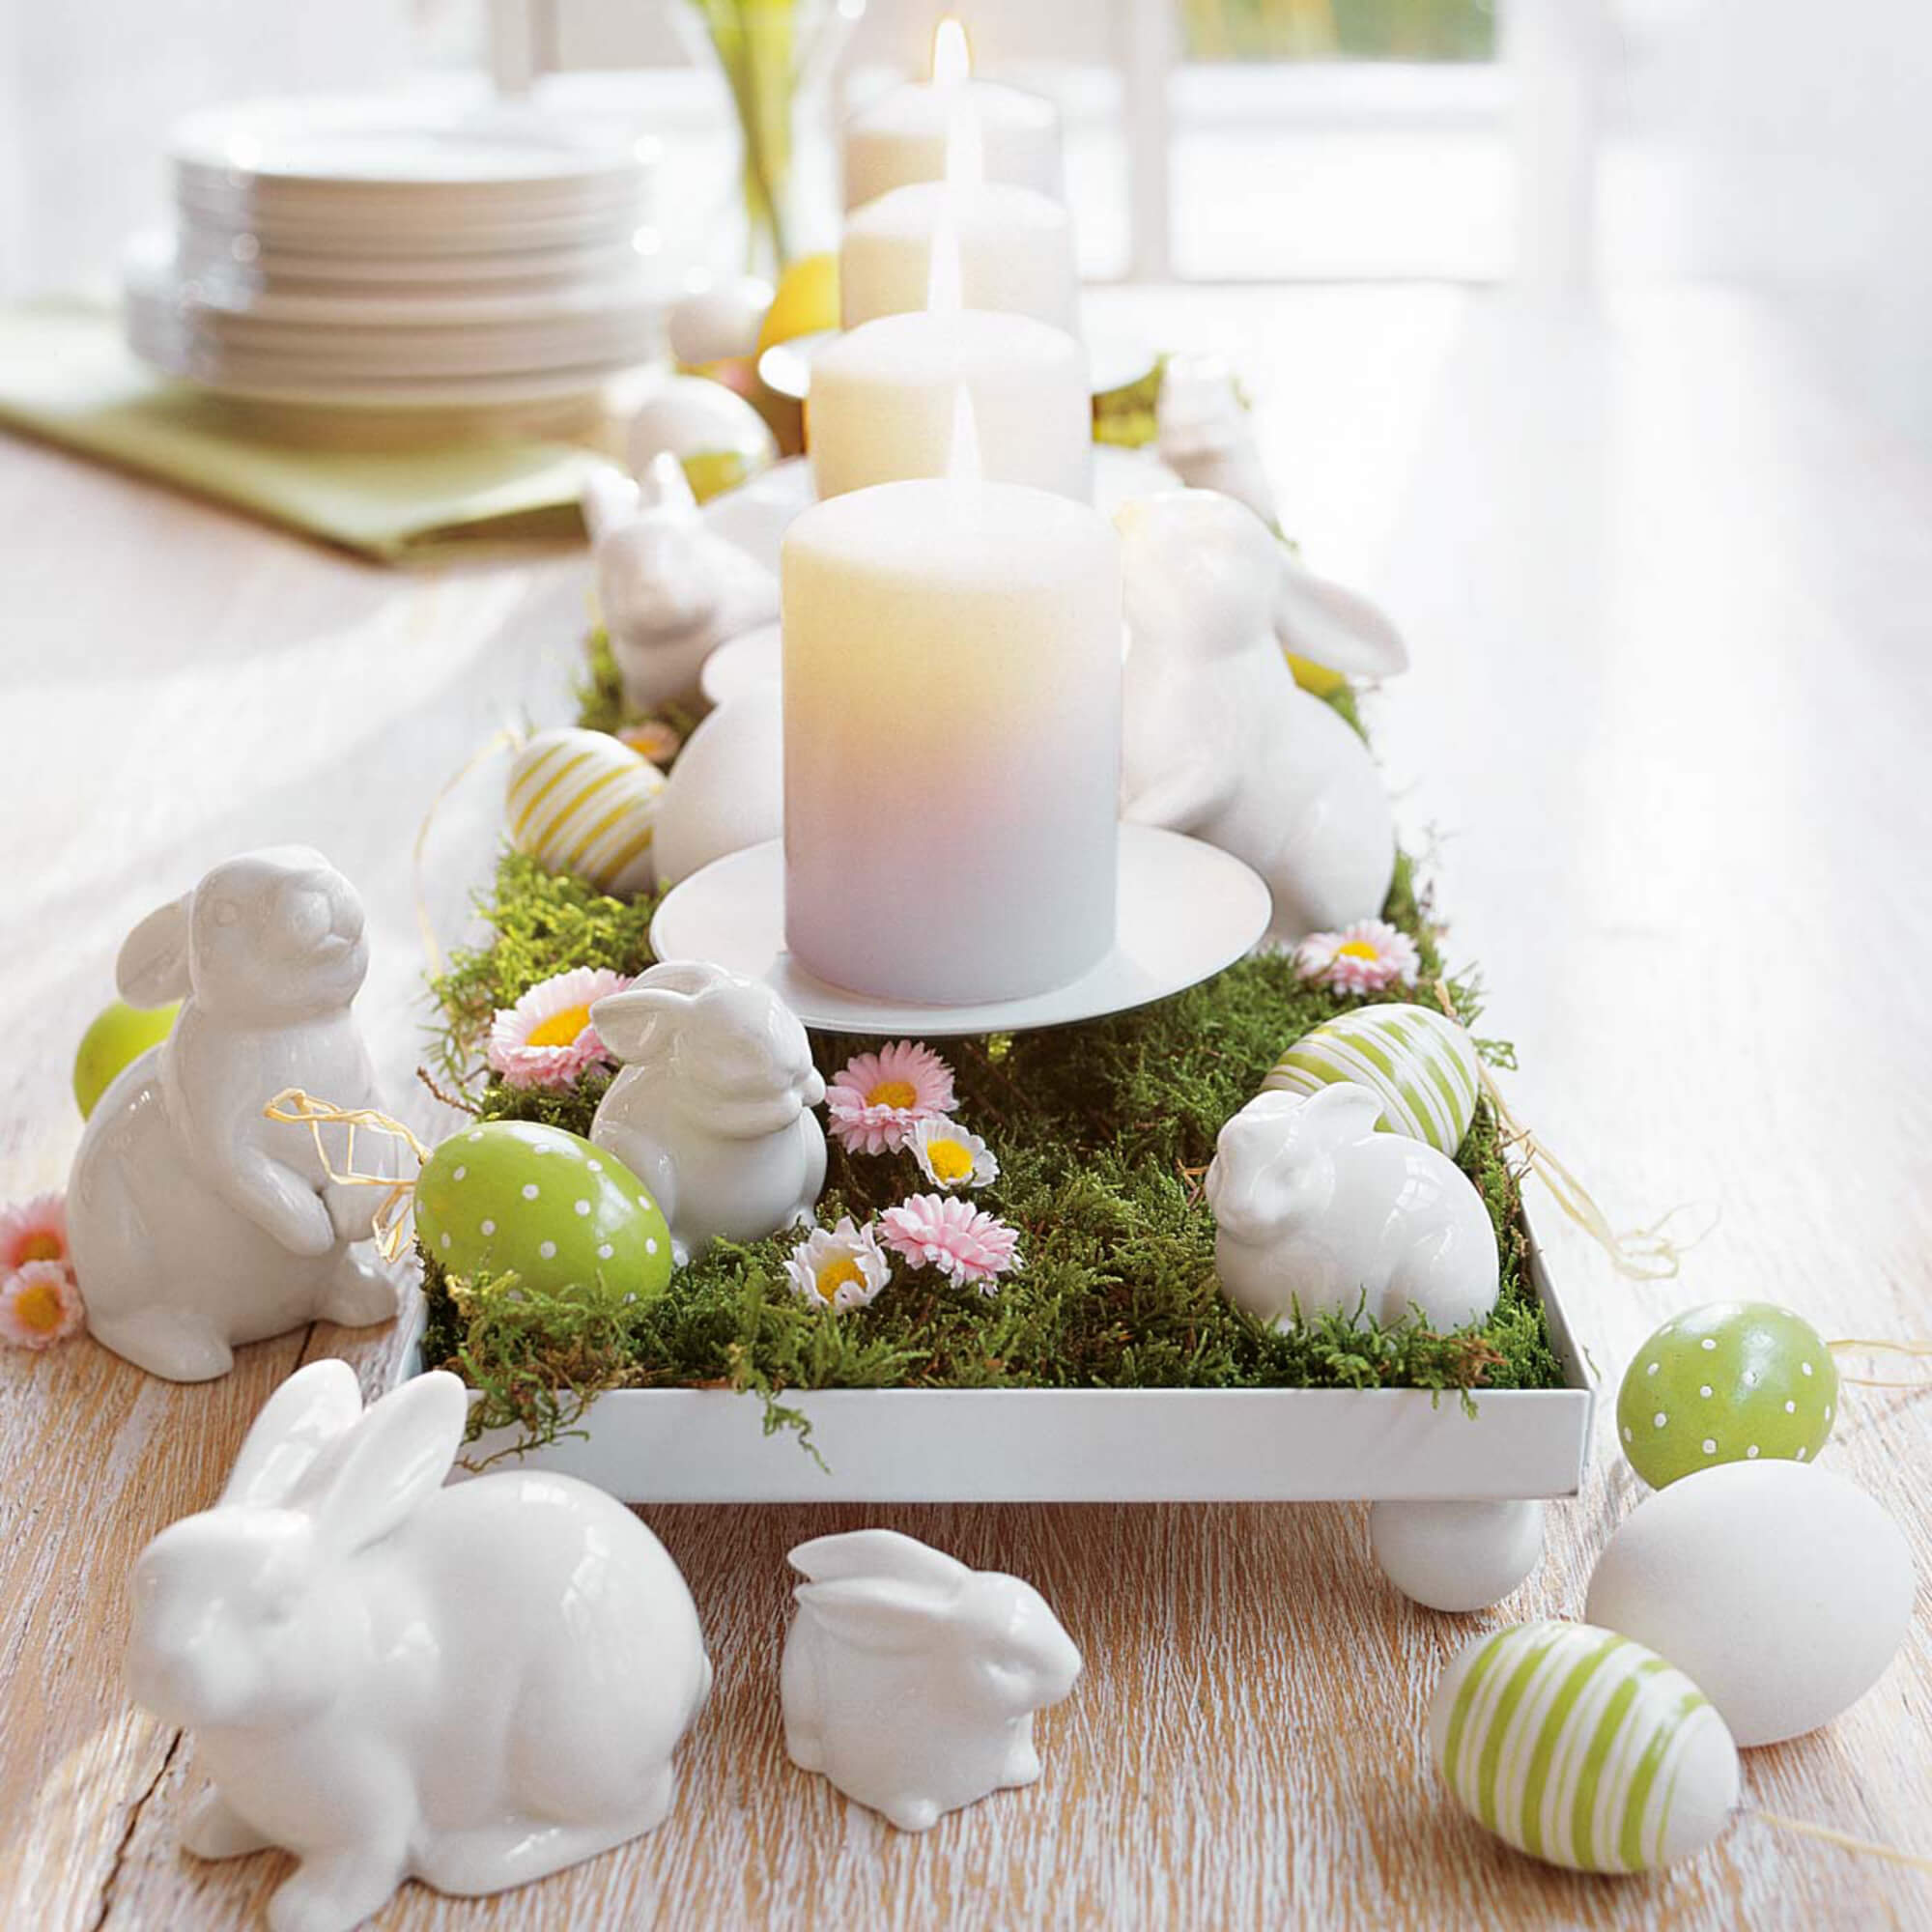 Beautiful and amazing holiday decor with bunnies and chickens